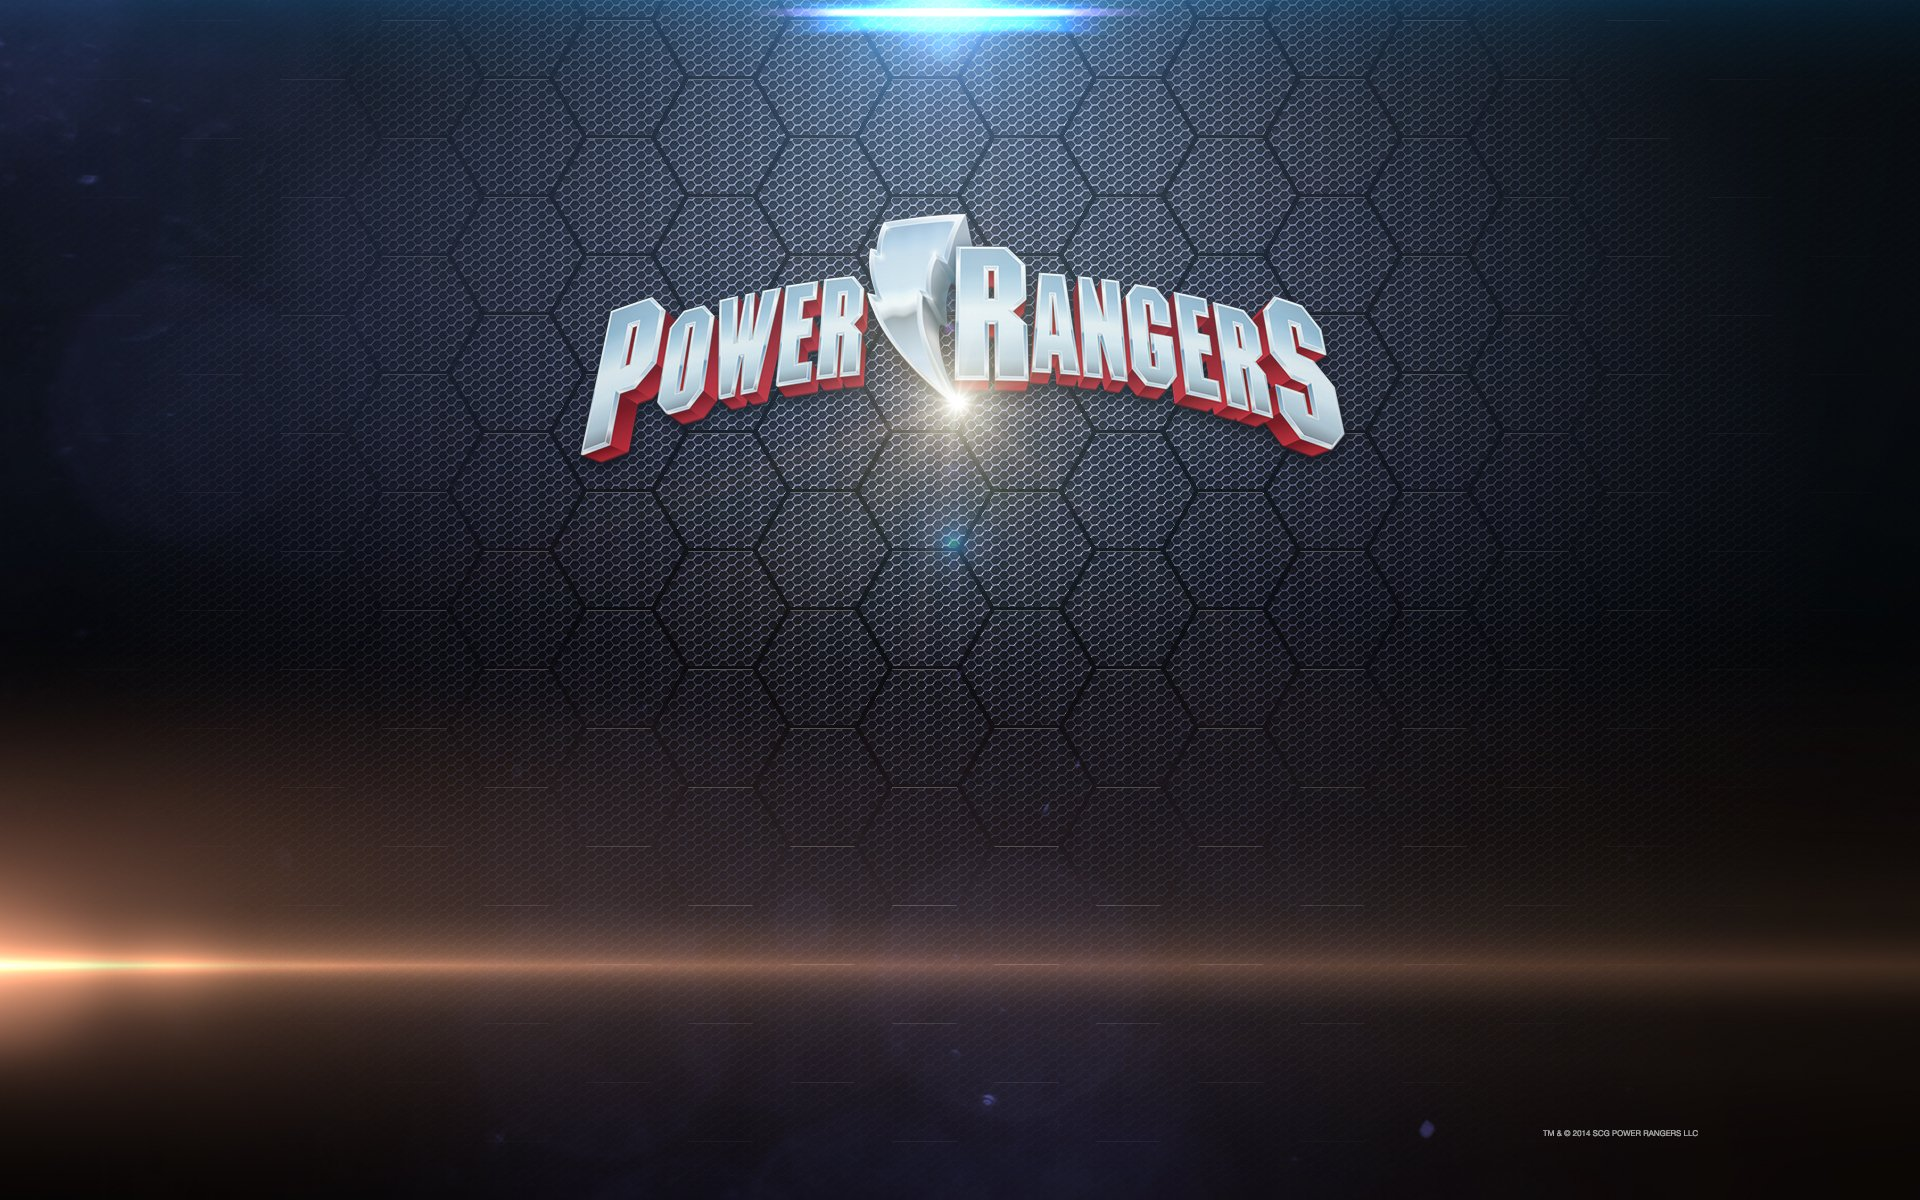 Power Rangers Wallpaper Logo Fun Desktop Wallpaper for Kids 1920x1200